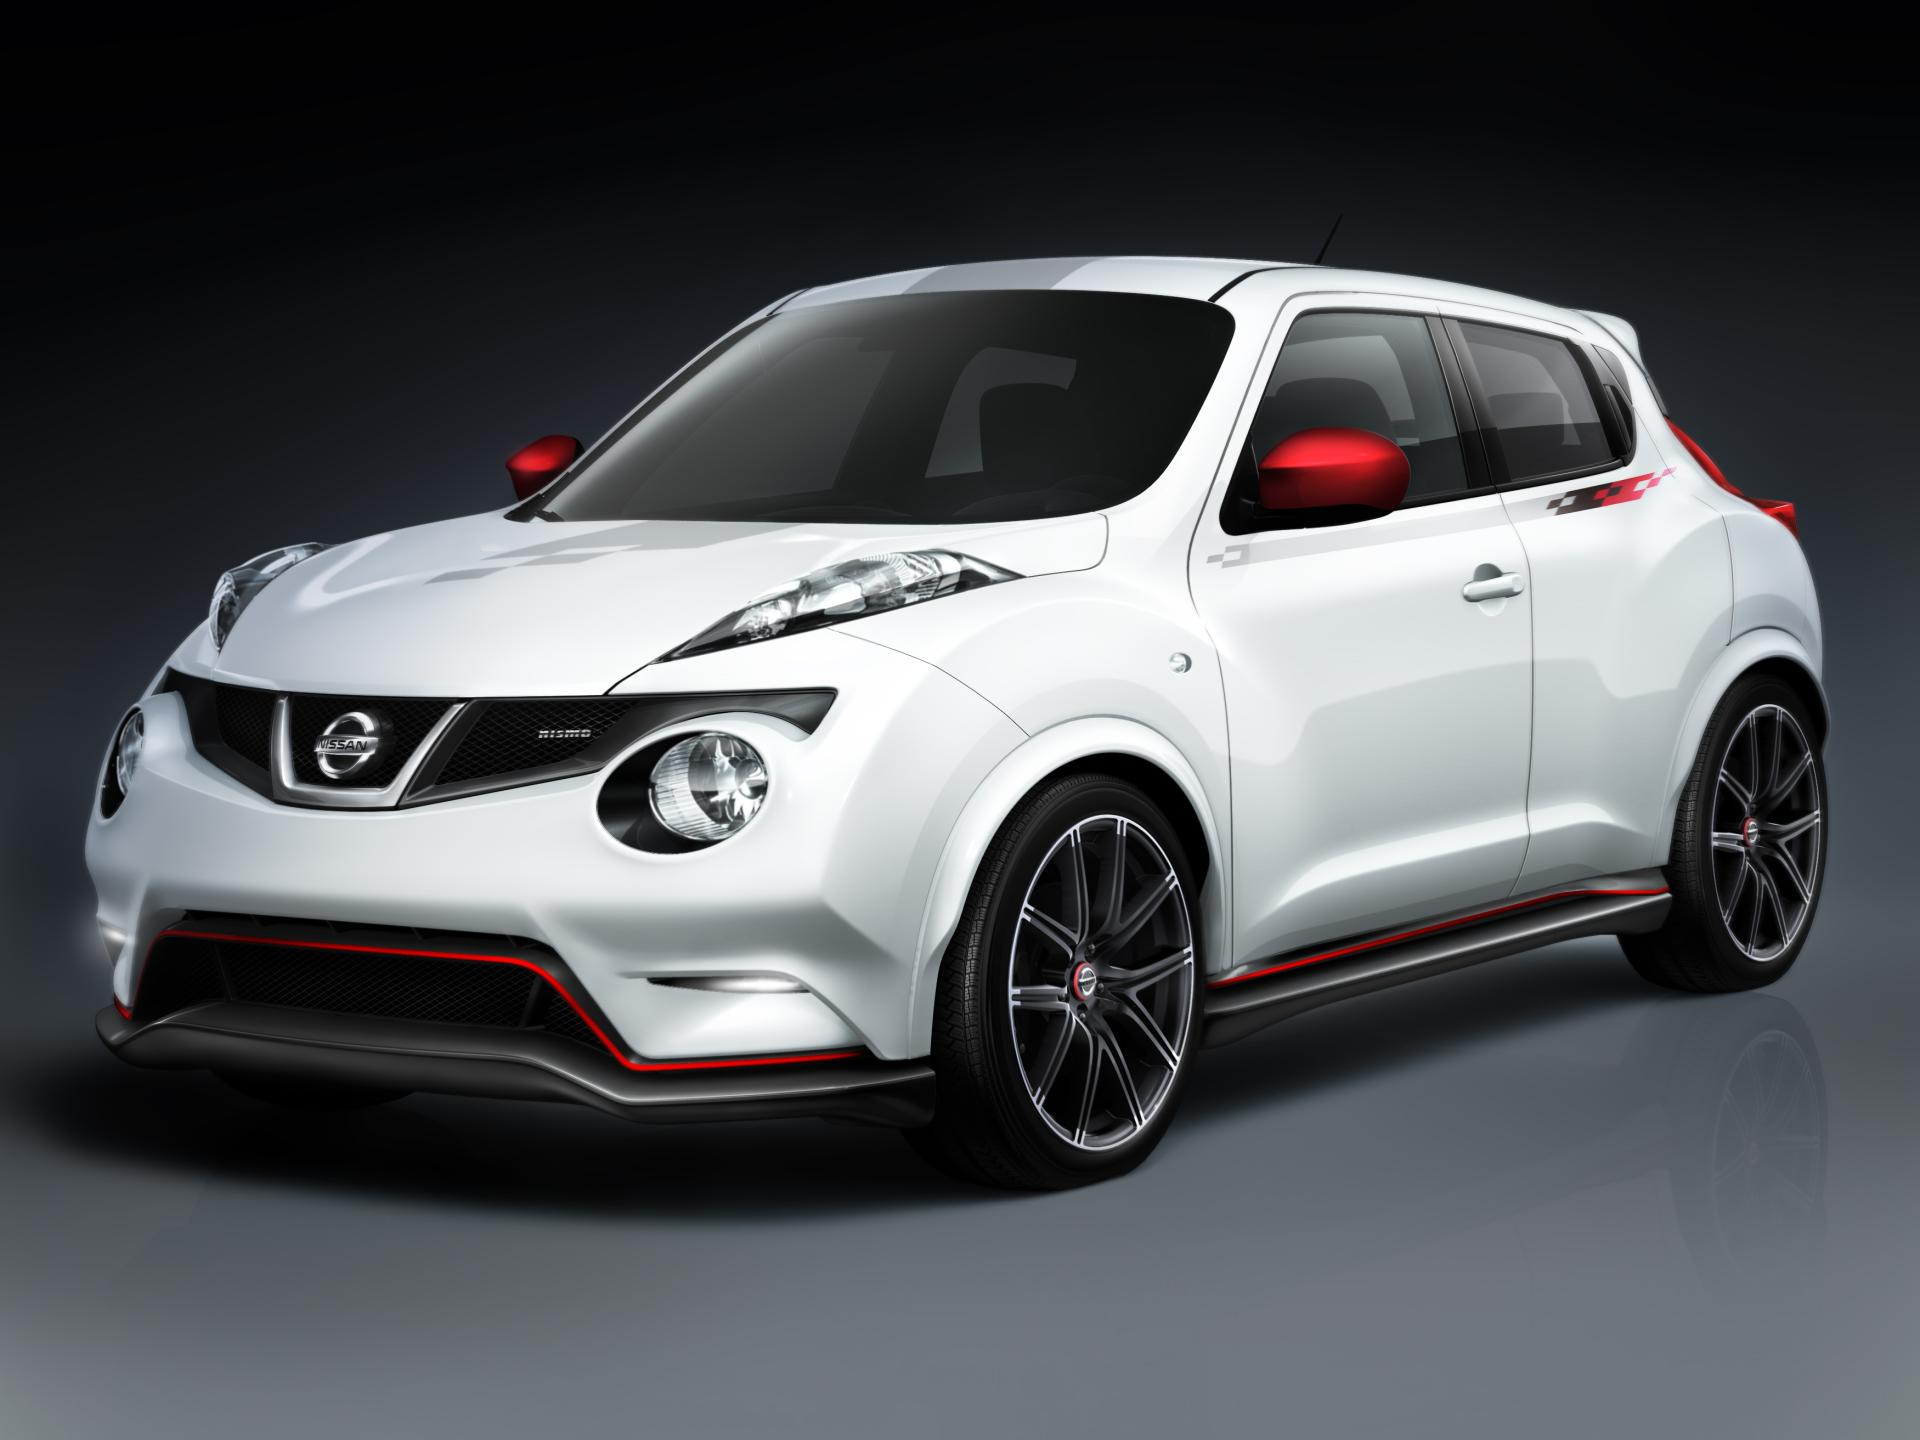 2012 nissan juke nismo concept. Black Bedroom Furniture Sets. Home Design Ideas